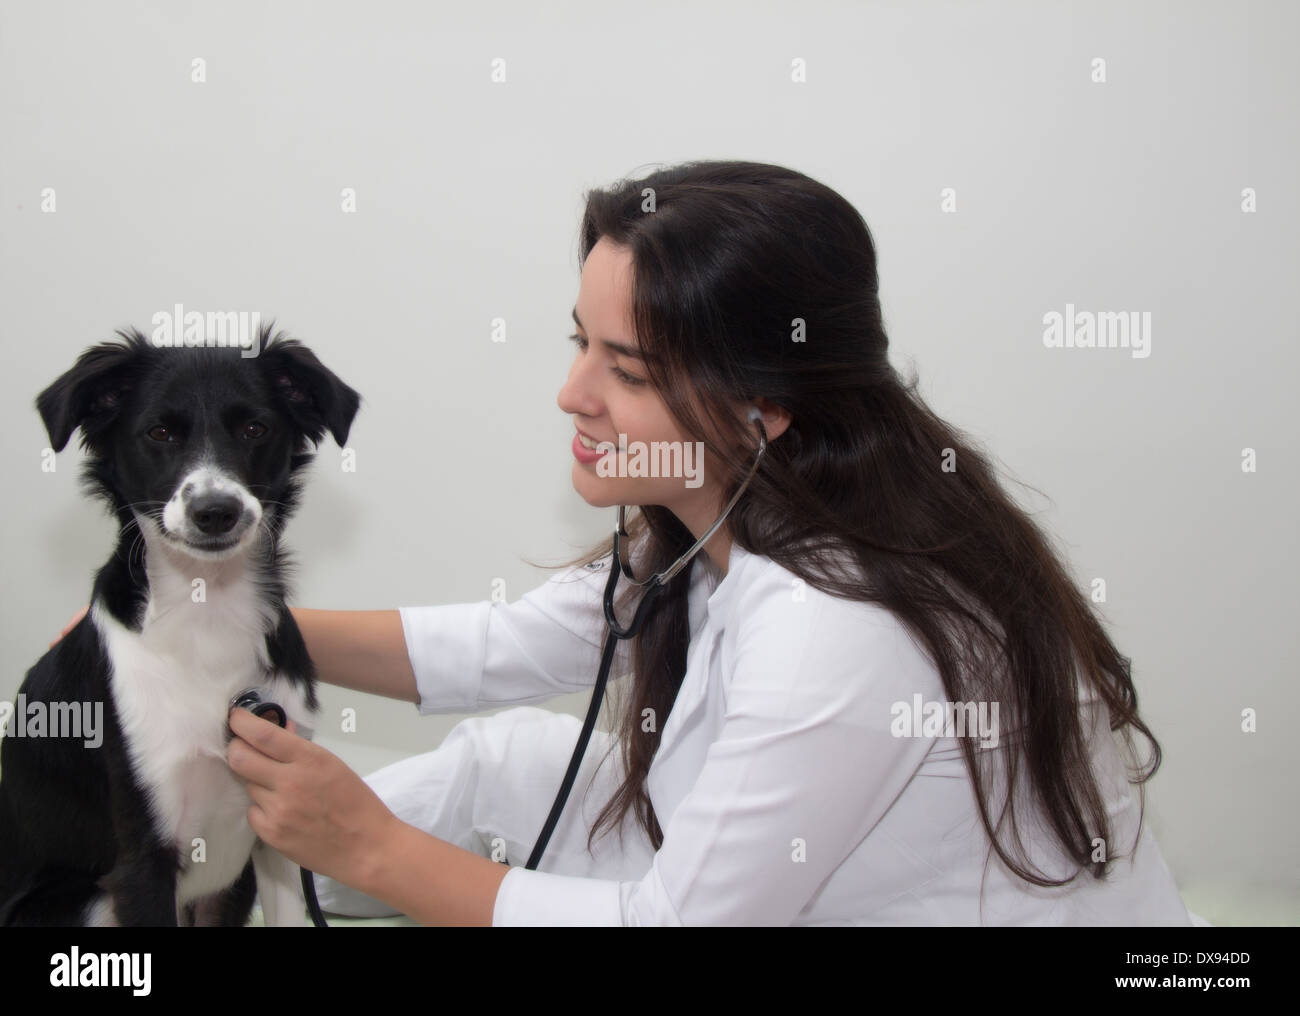 Veterinarian doctor and a border collie - Stock Image